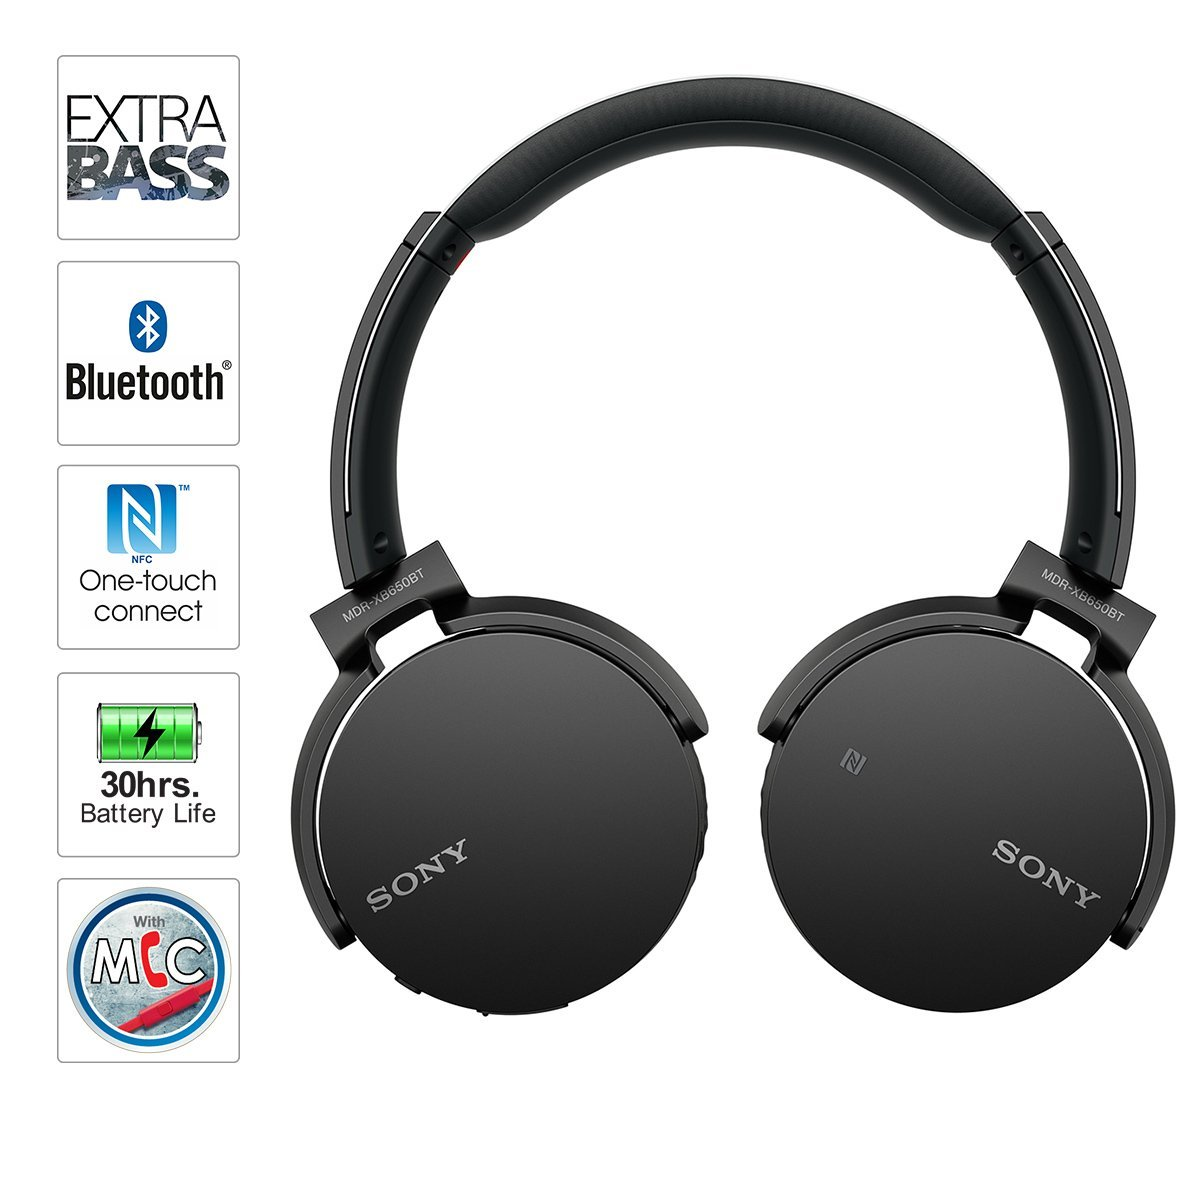 sony bluetooth wireless nfc over ear headphones extra bass. Black Bedroom Furniture Sets. Home Design Ideas